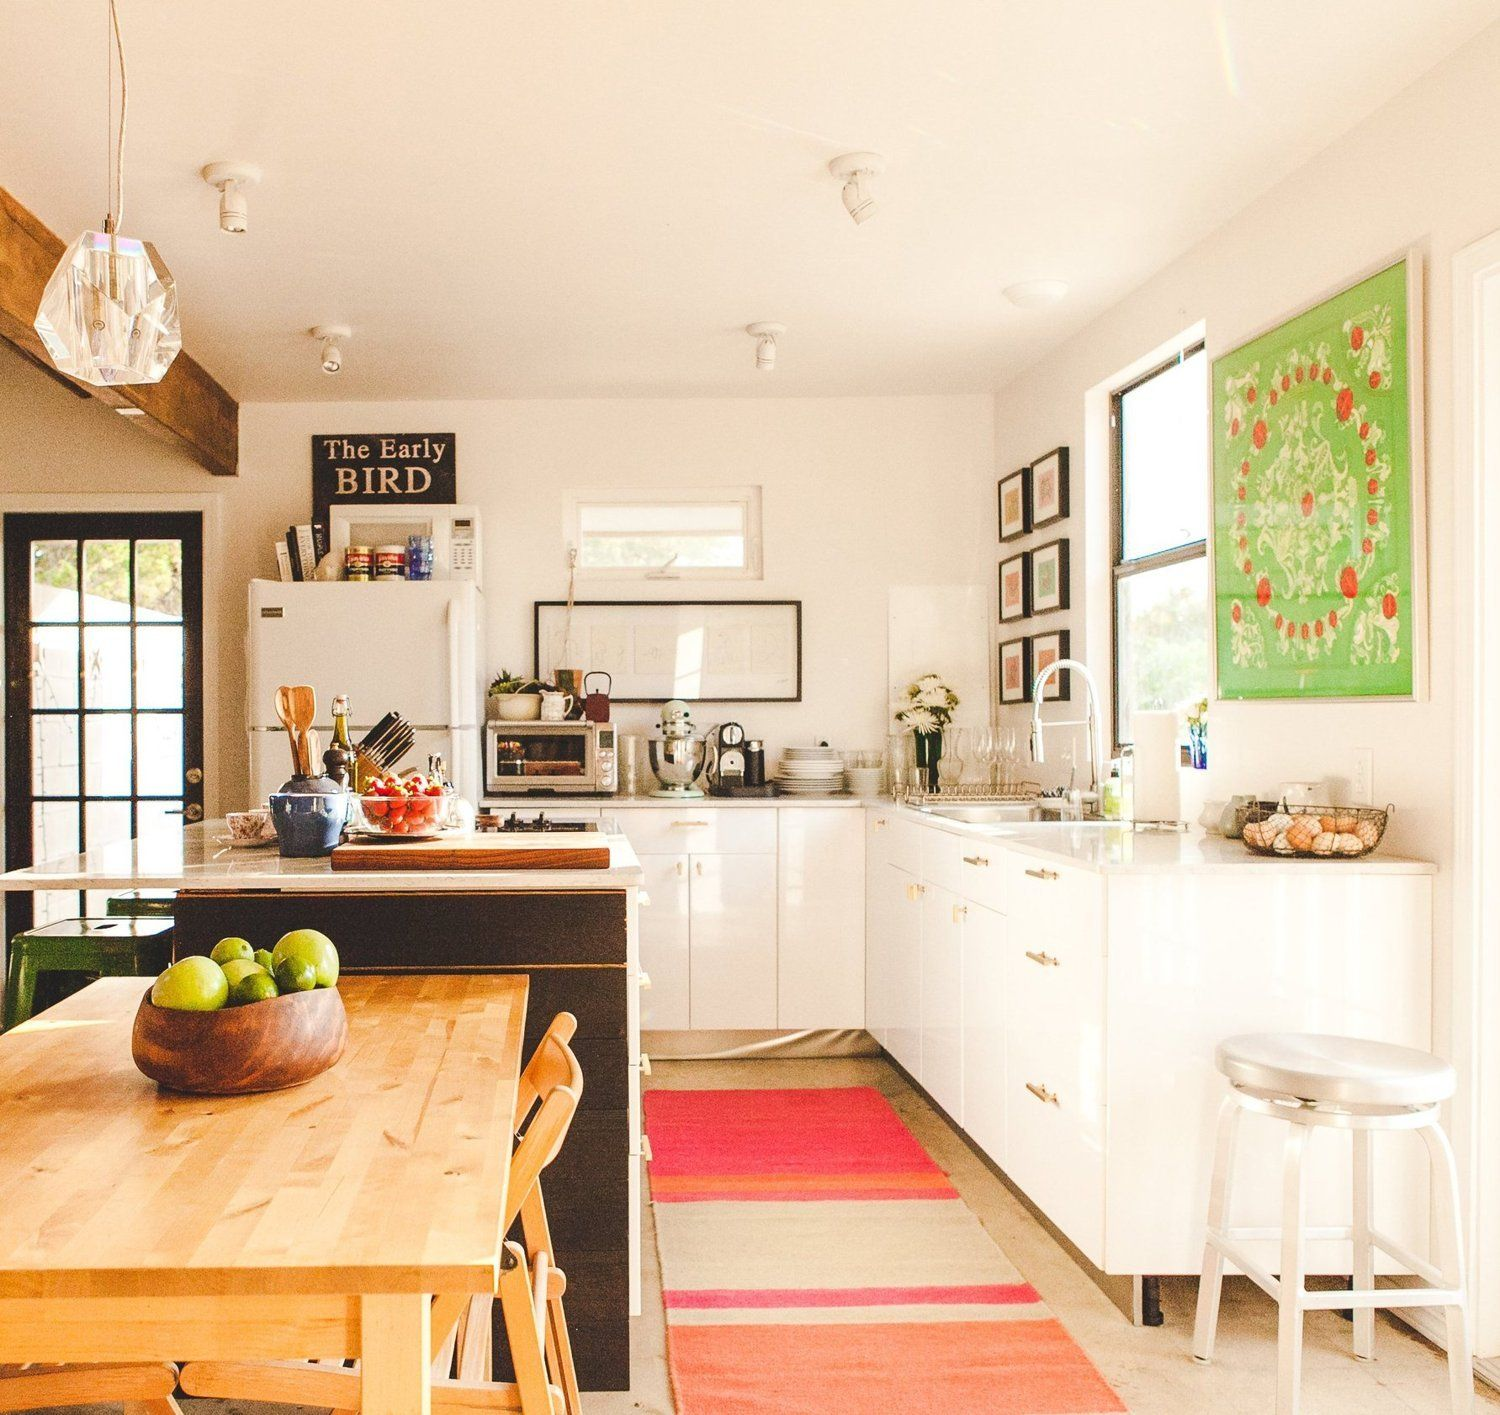 10 Surprising Uses for Kitchen Items Around the Rest of the House — Double Duty | The Kitchn